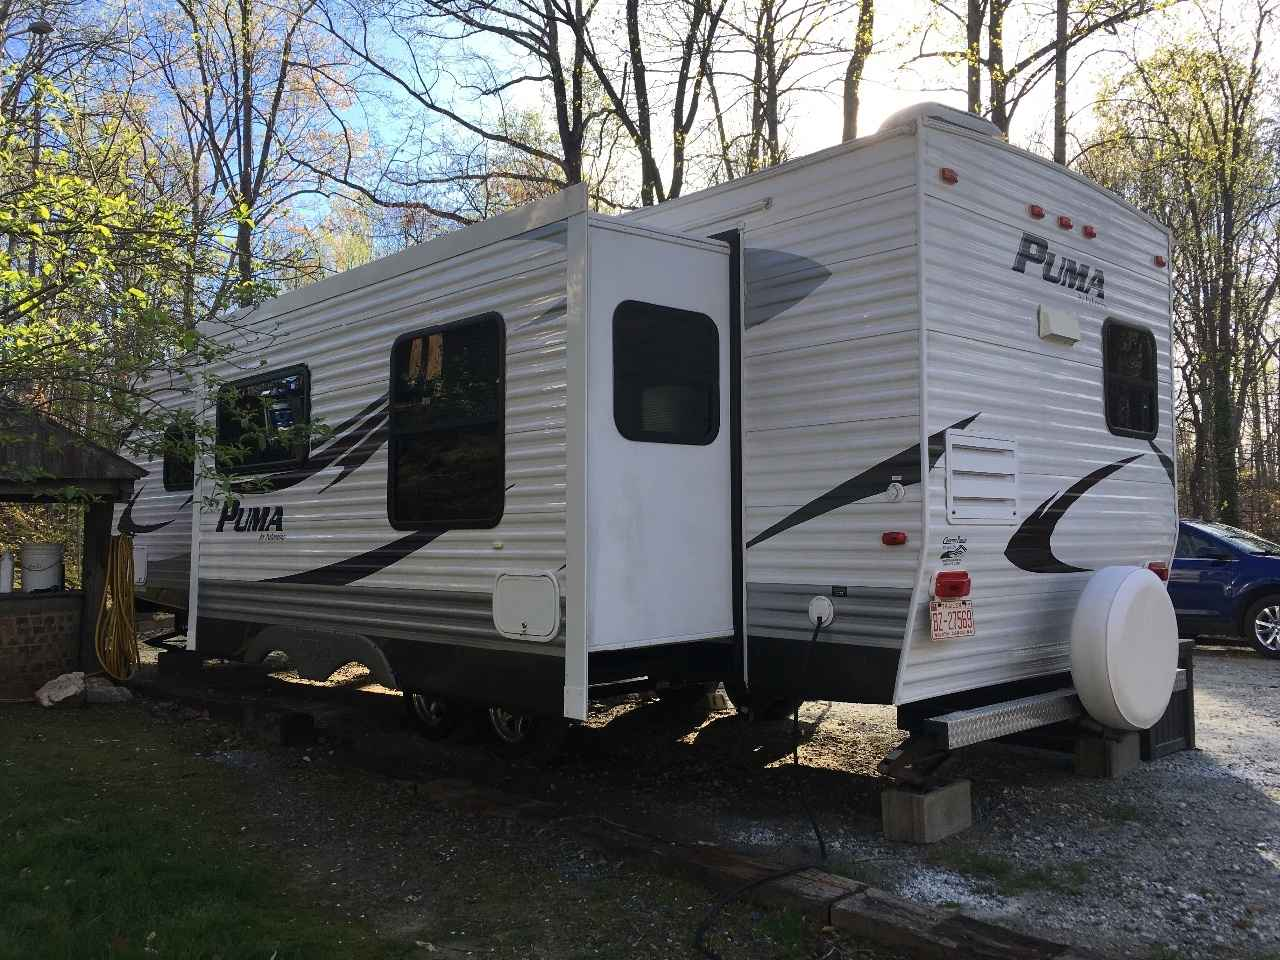 2011 Used Palomino Puma 30 Rkss Travel Trailer In North